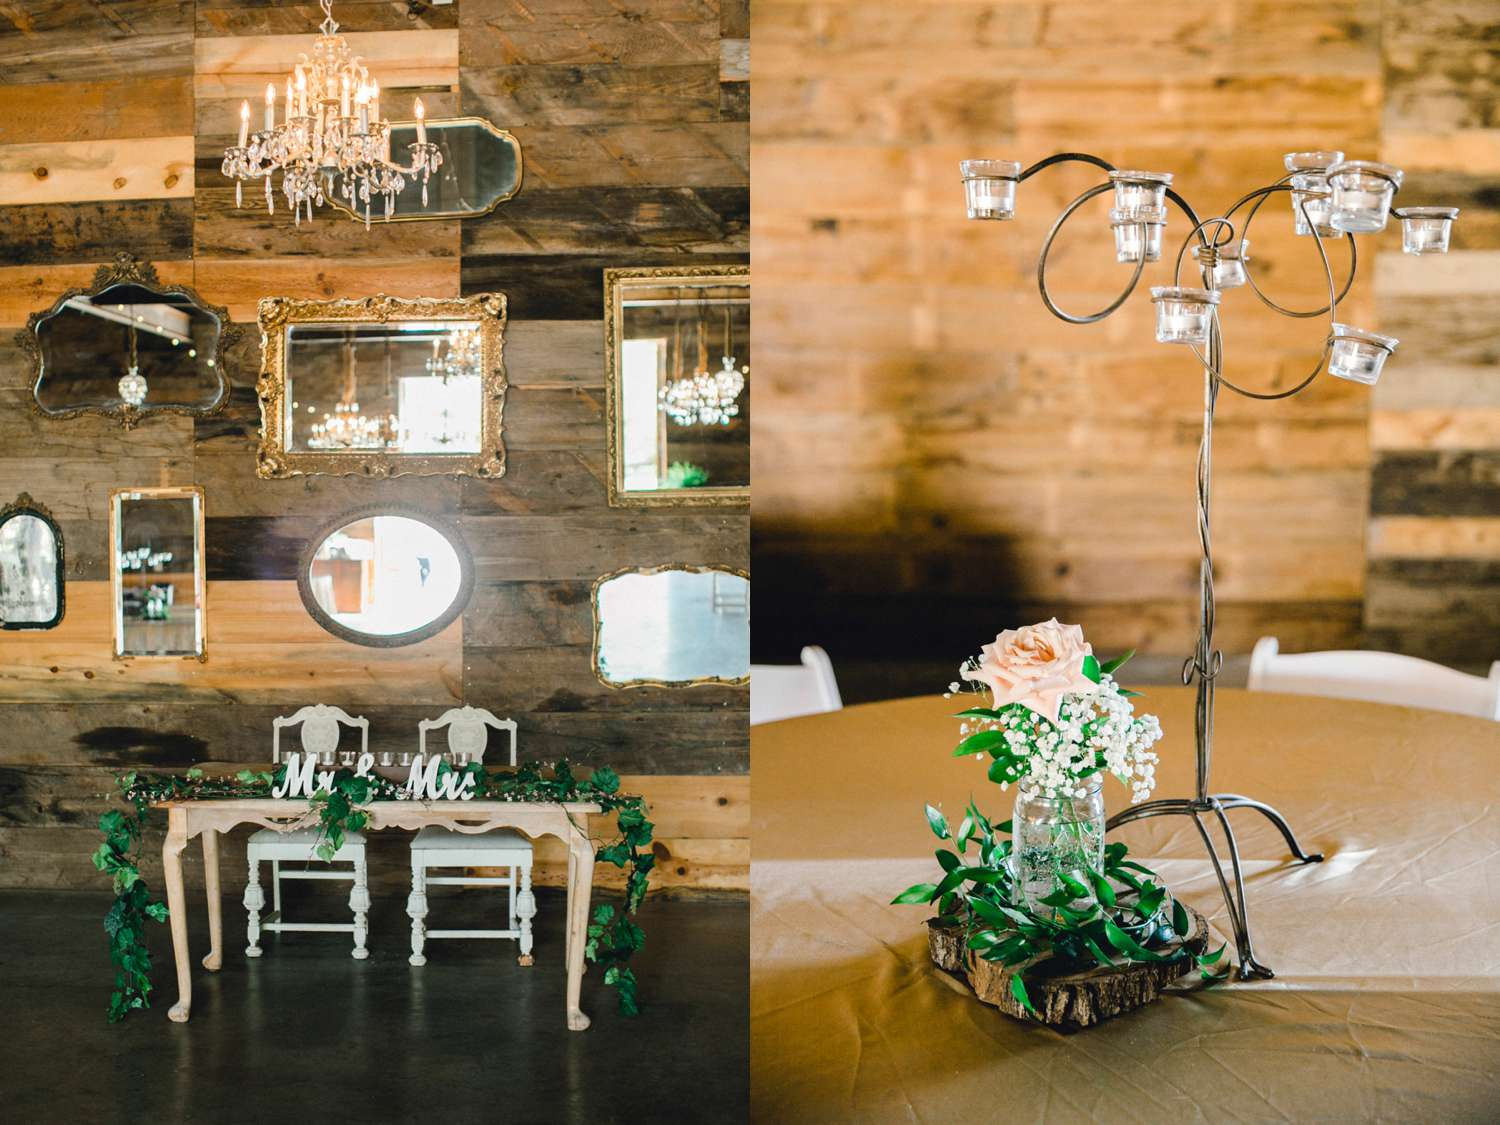 SARAH+TREVOR+BADGETT+SPARROW+CREEK+GRAHAM+TEXAS+ALLEEJ+WEDDINGS_0116.jpg